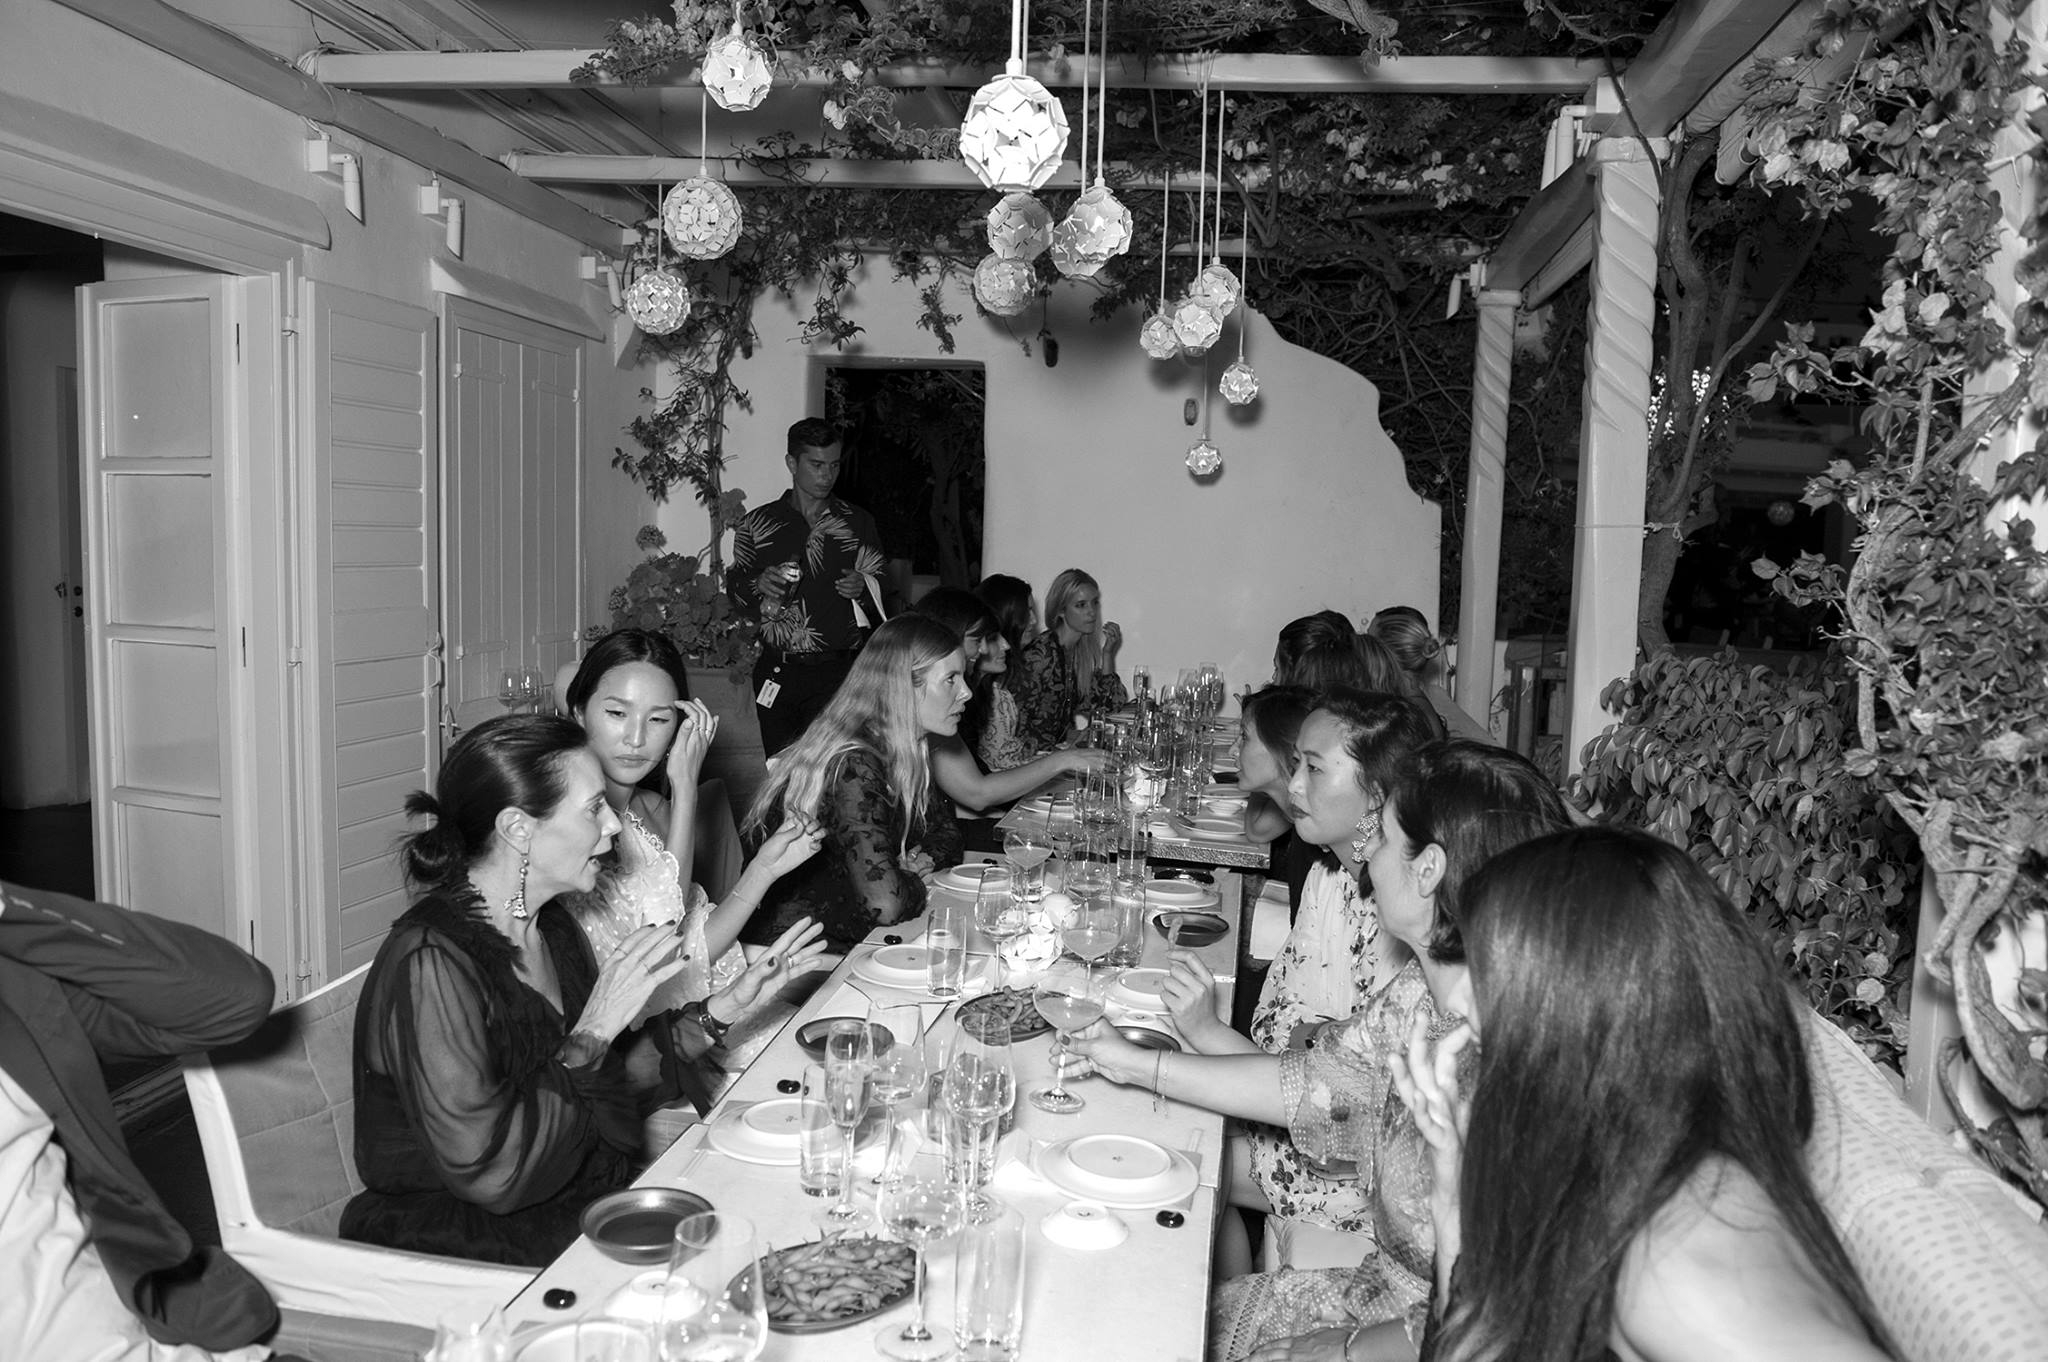 Our dinner party guests at the table chatting amongst themselves